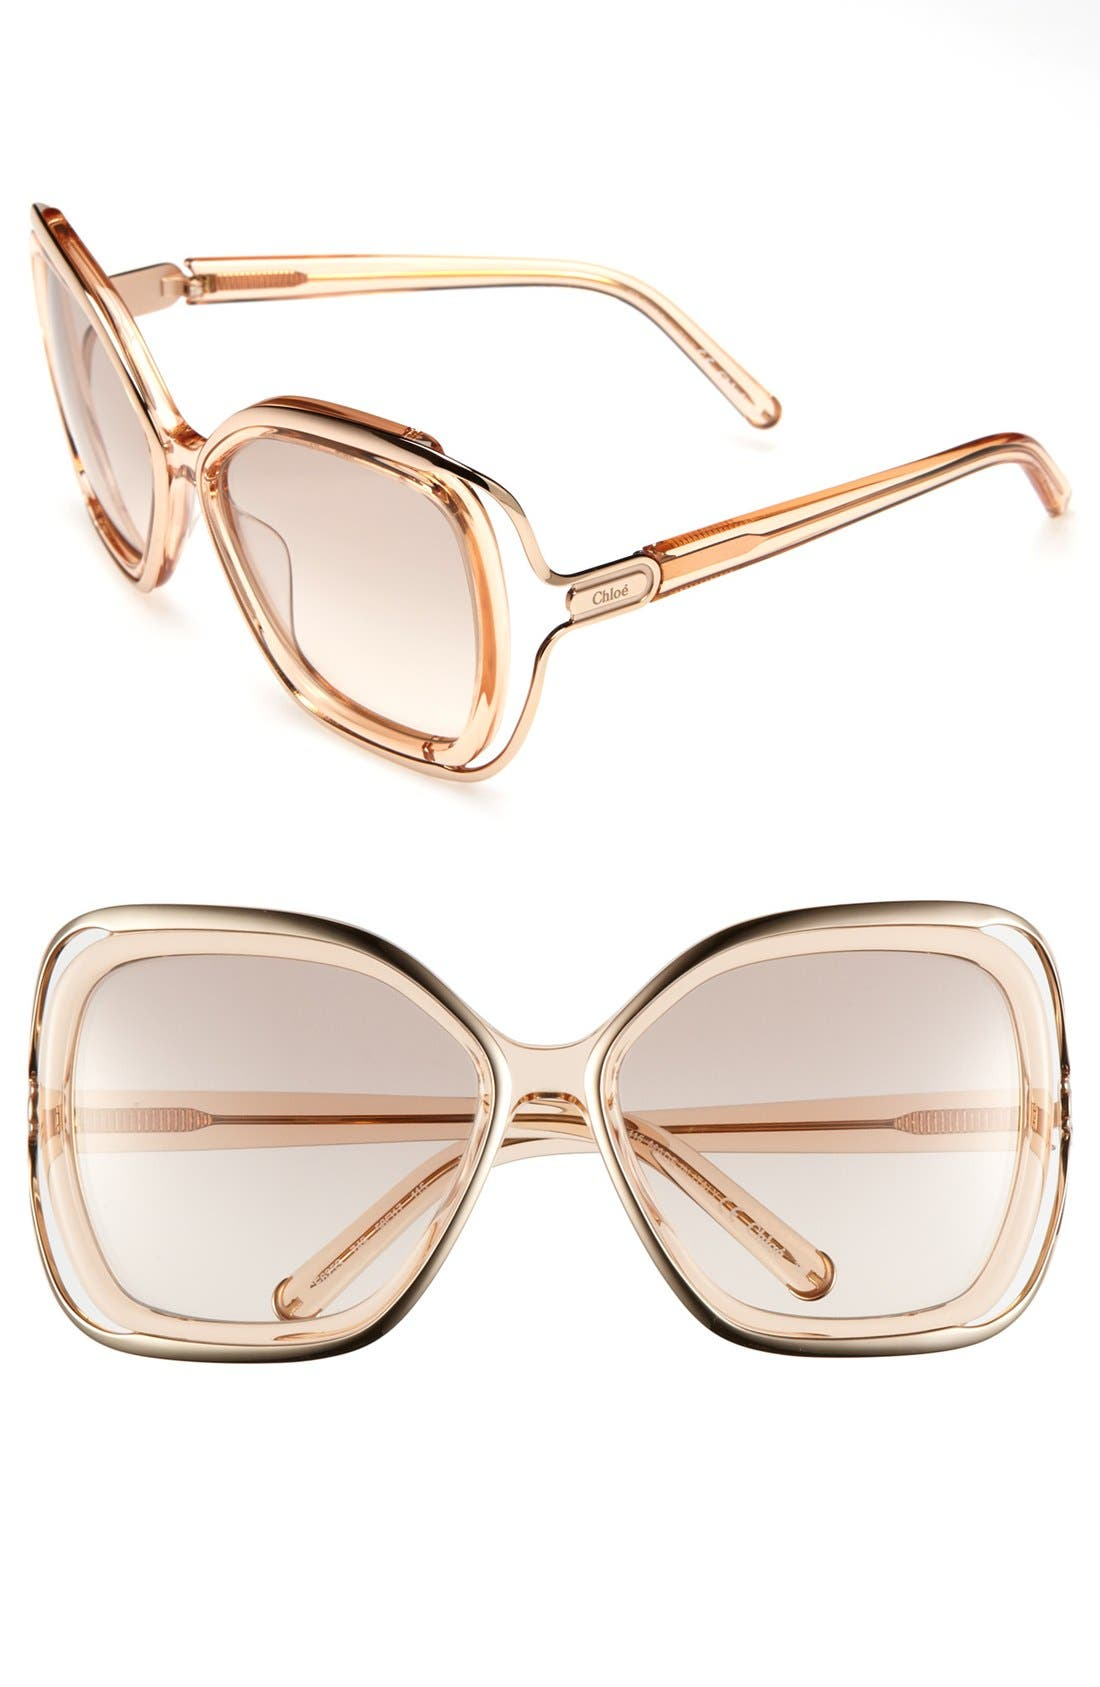 Main Image - Chloé 56mm Sunglasses